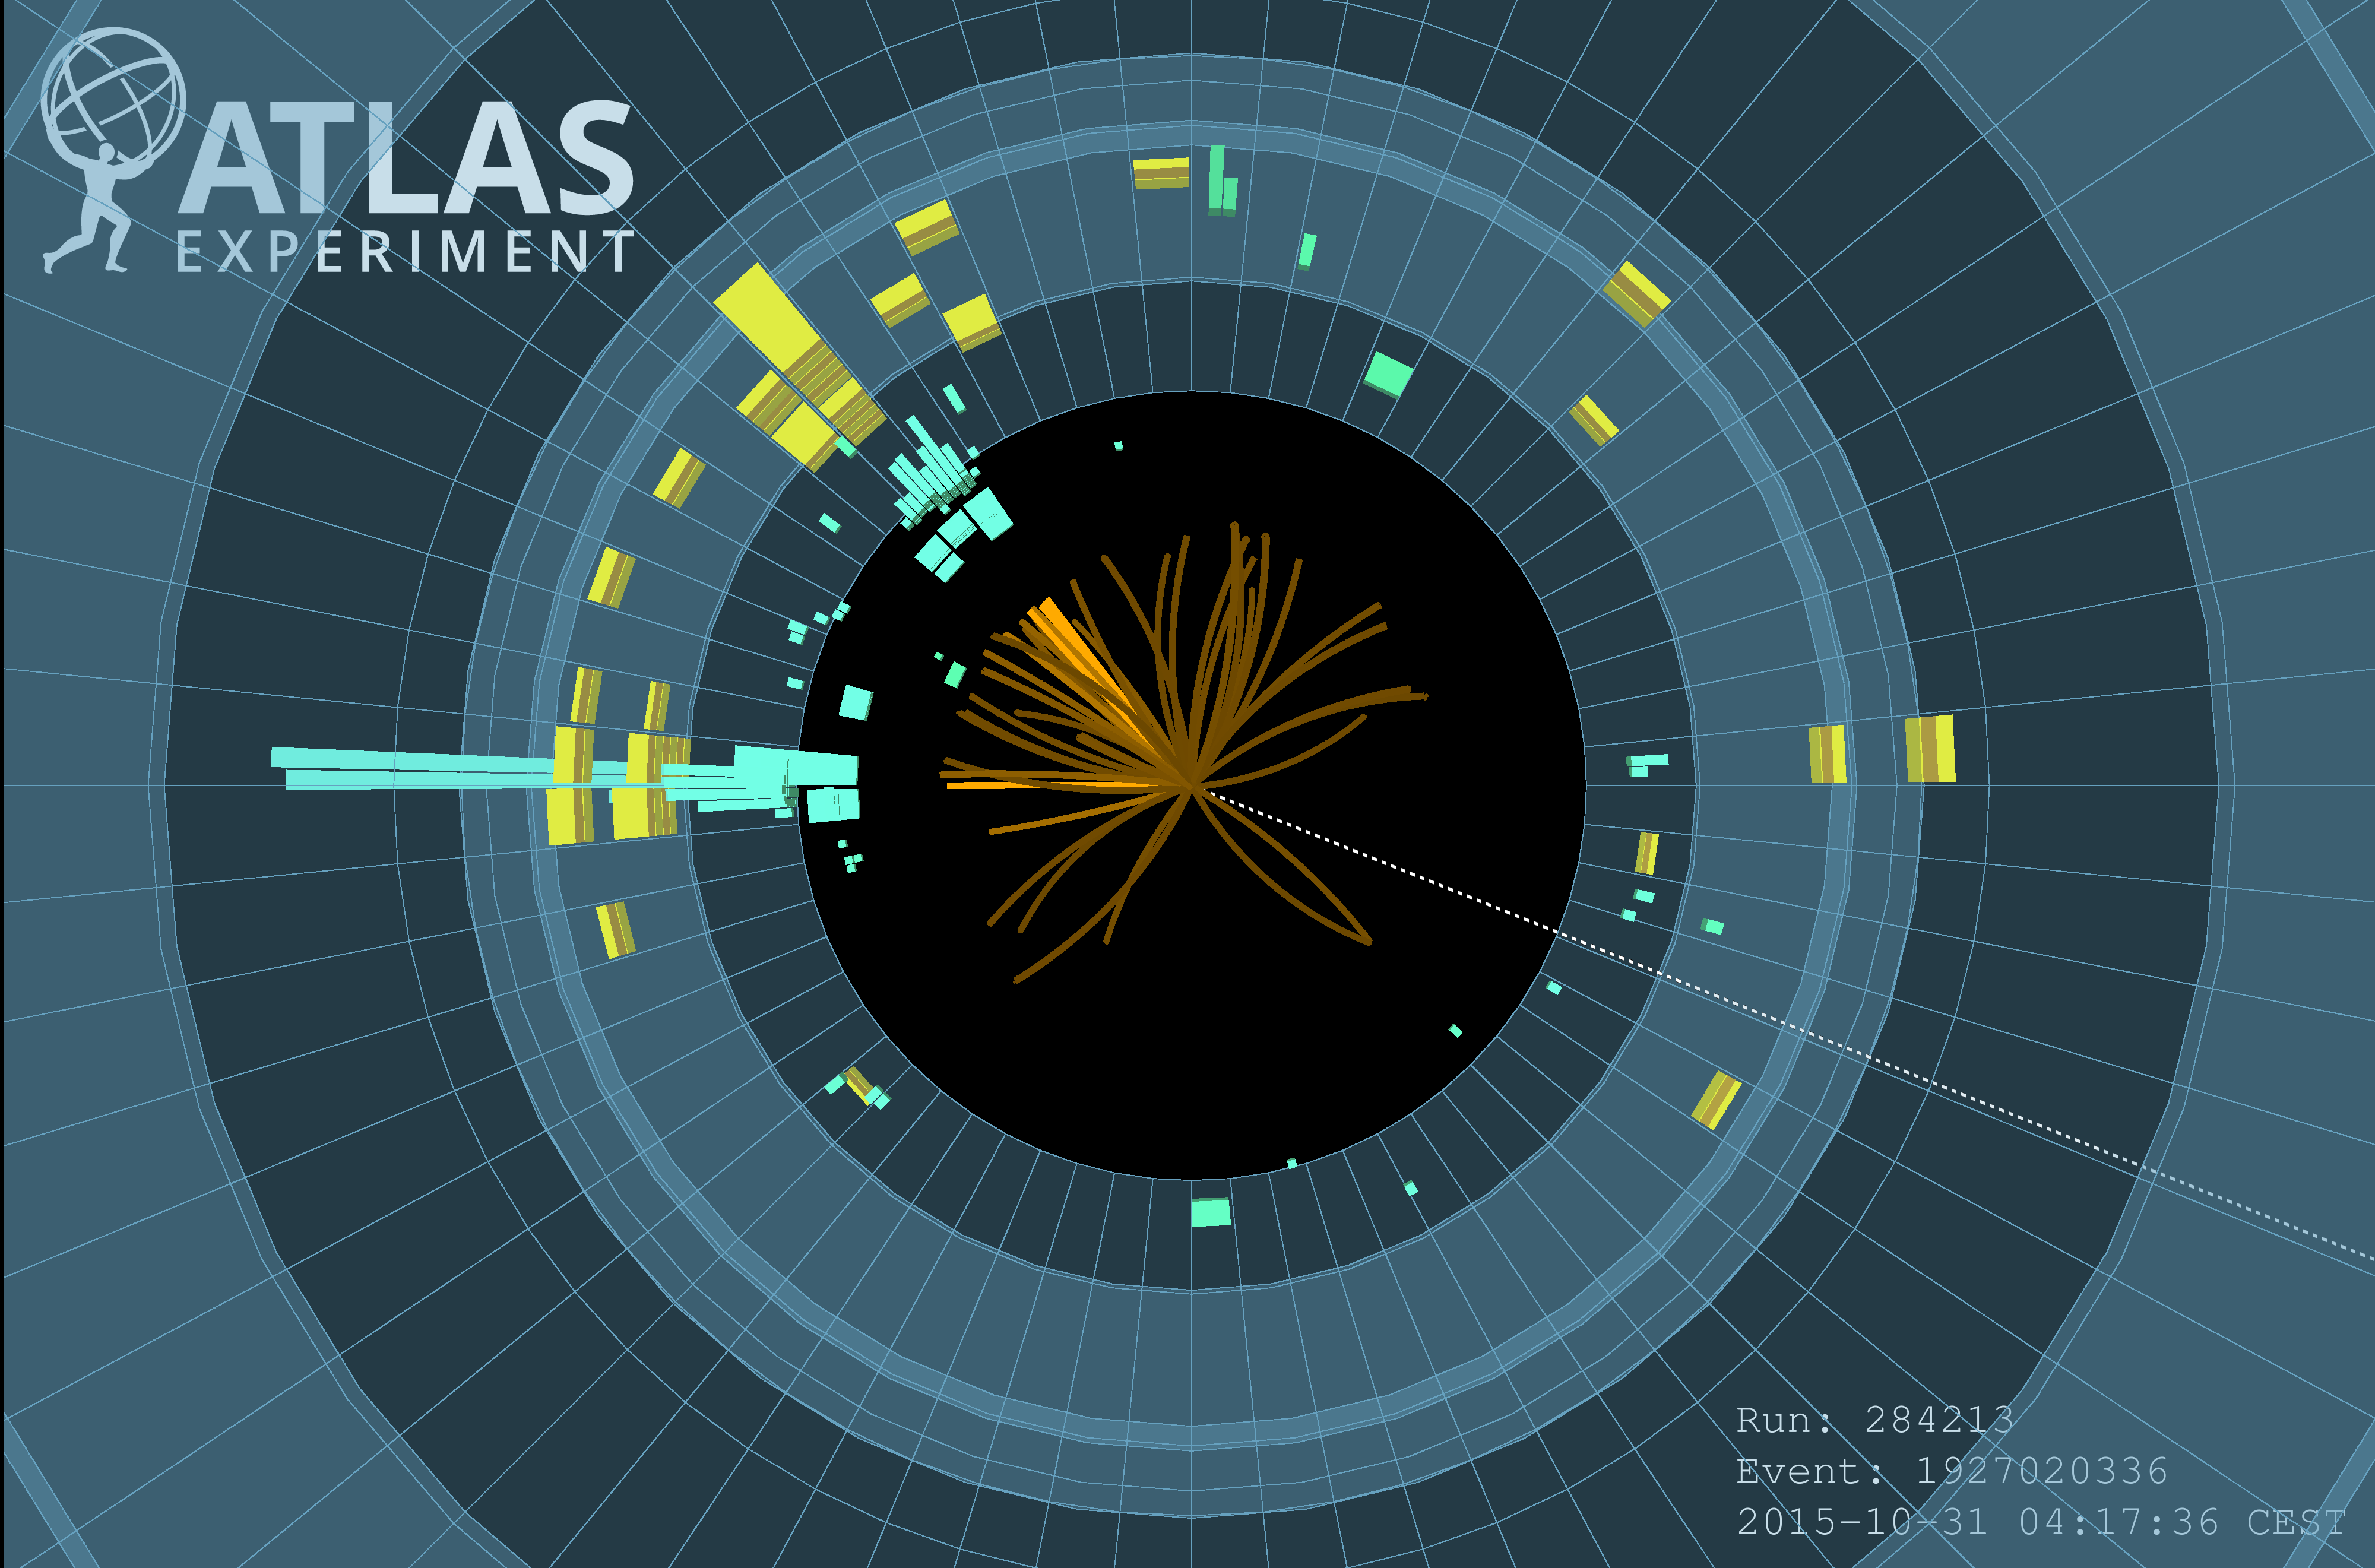 Long-Sought Higgs Boson Detail Finally Confirmed